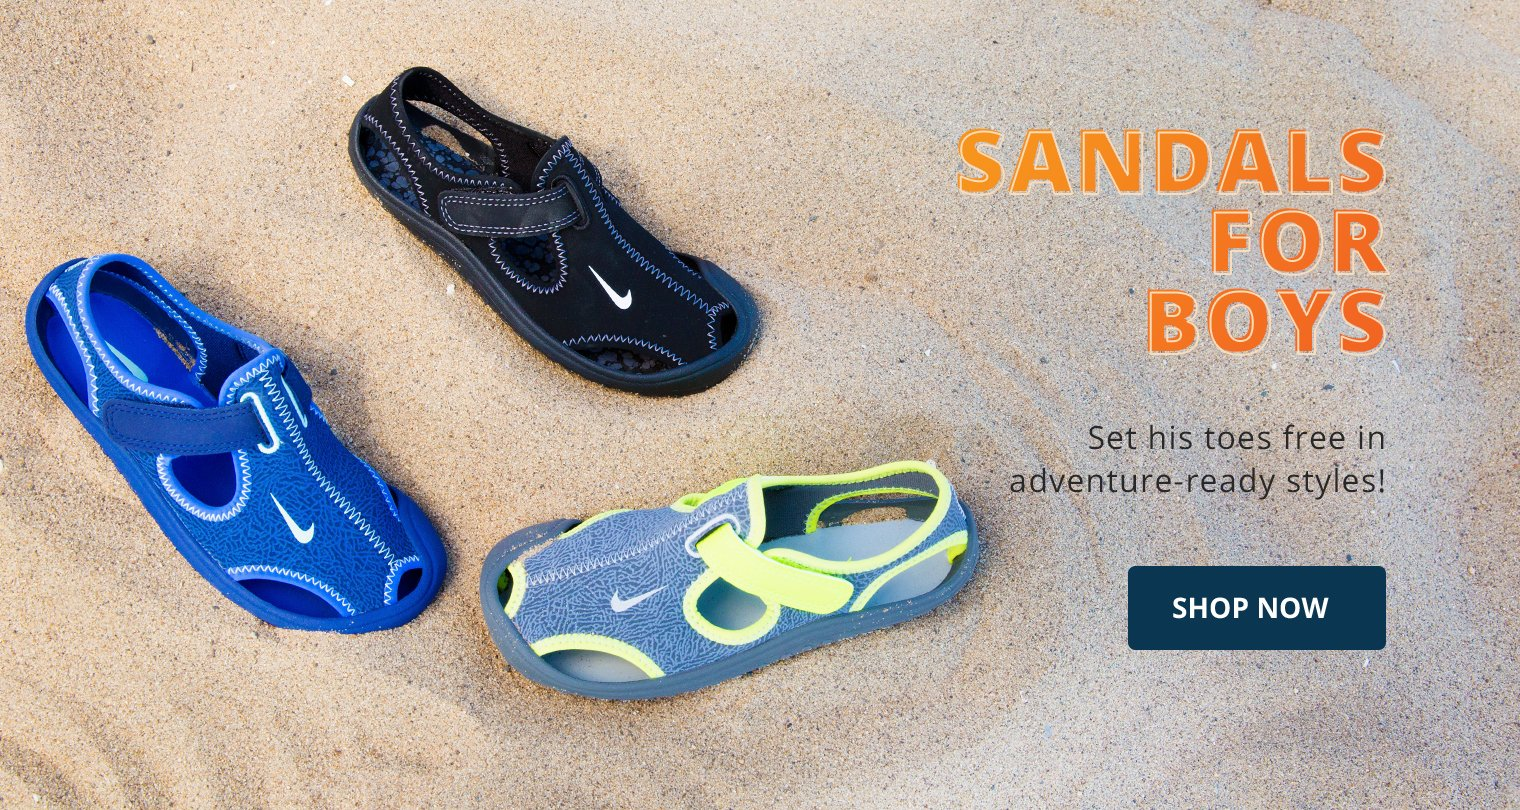 Sandals for boys. Set his toes free in adventure ready styles! Shop Now.